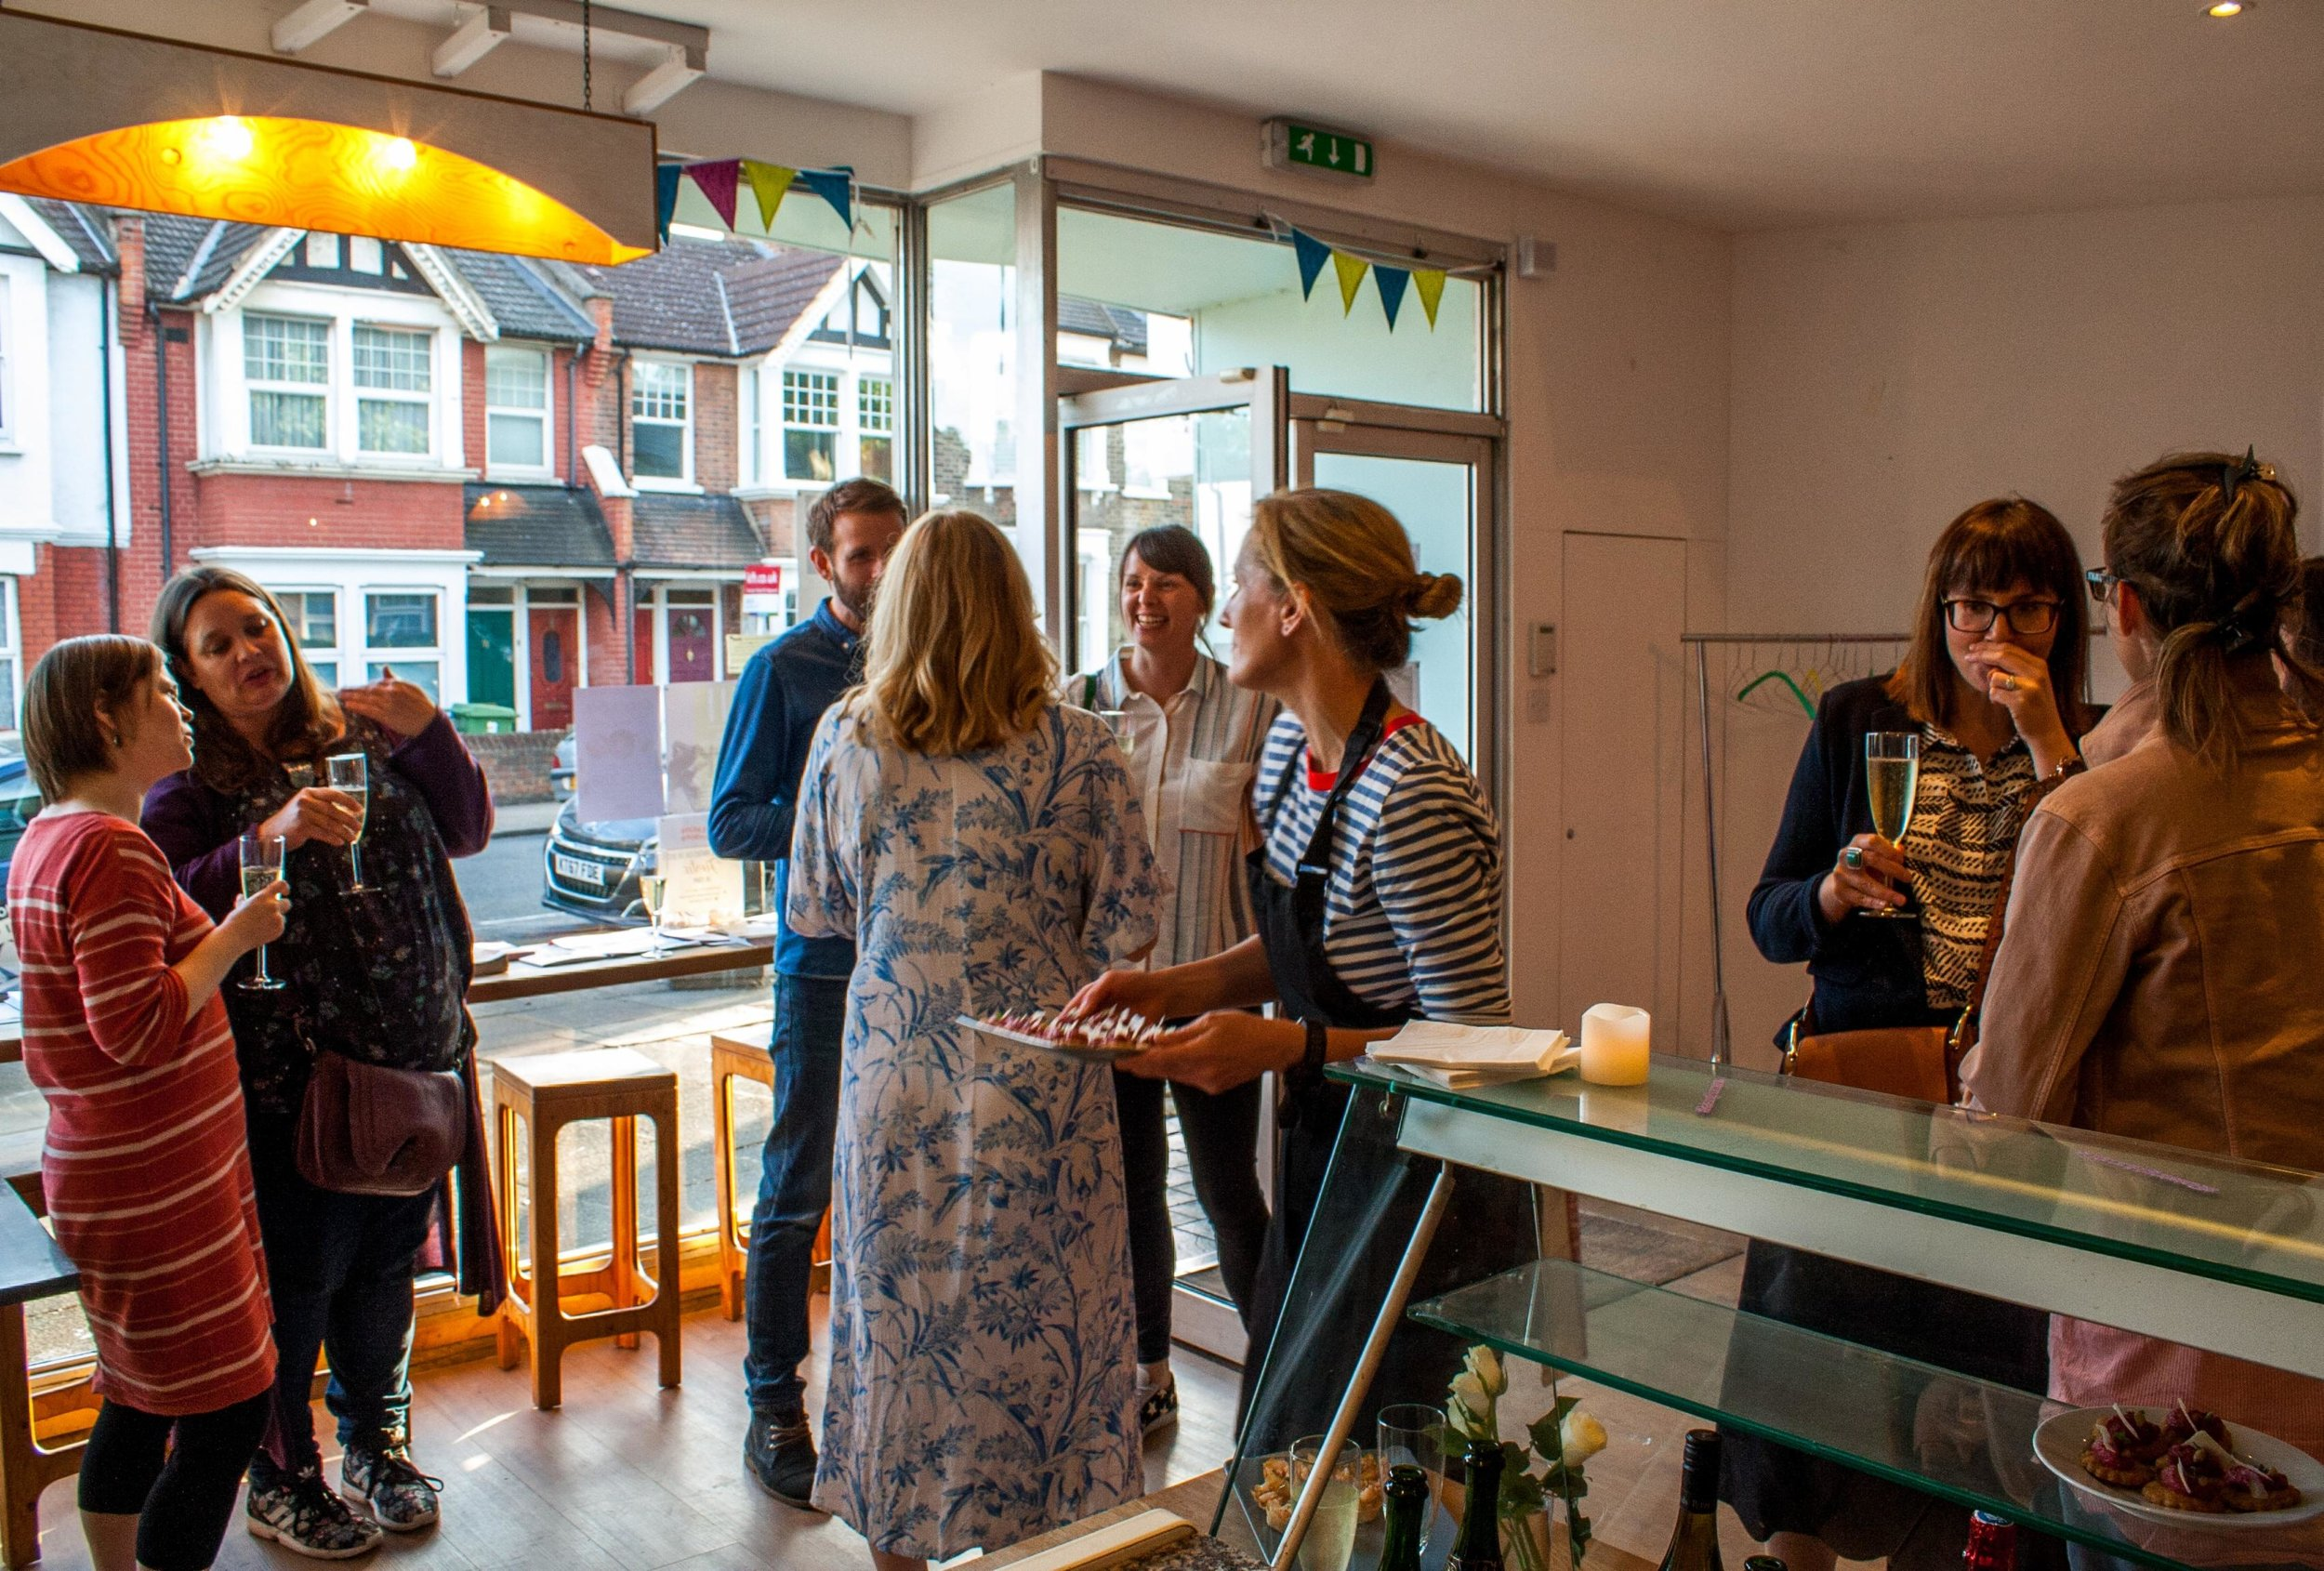 Creative events venue in Nunhead, South East London